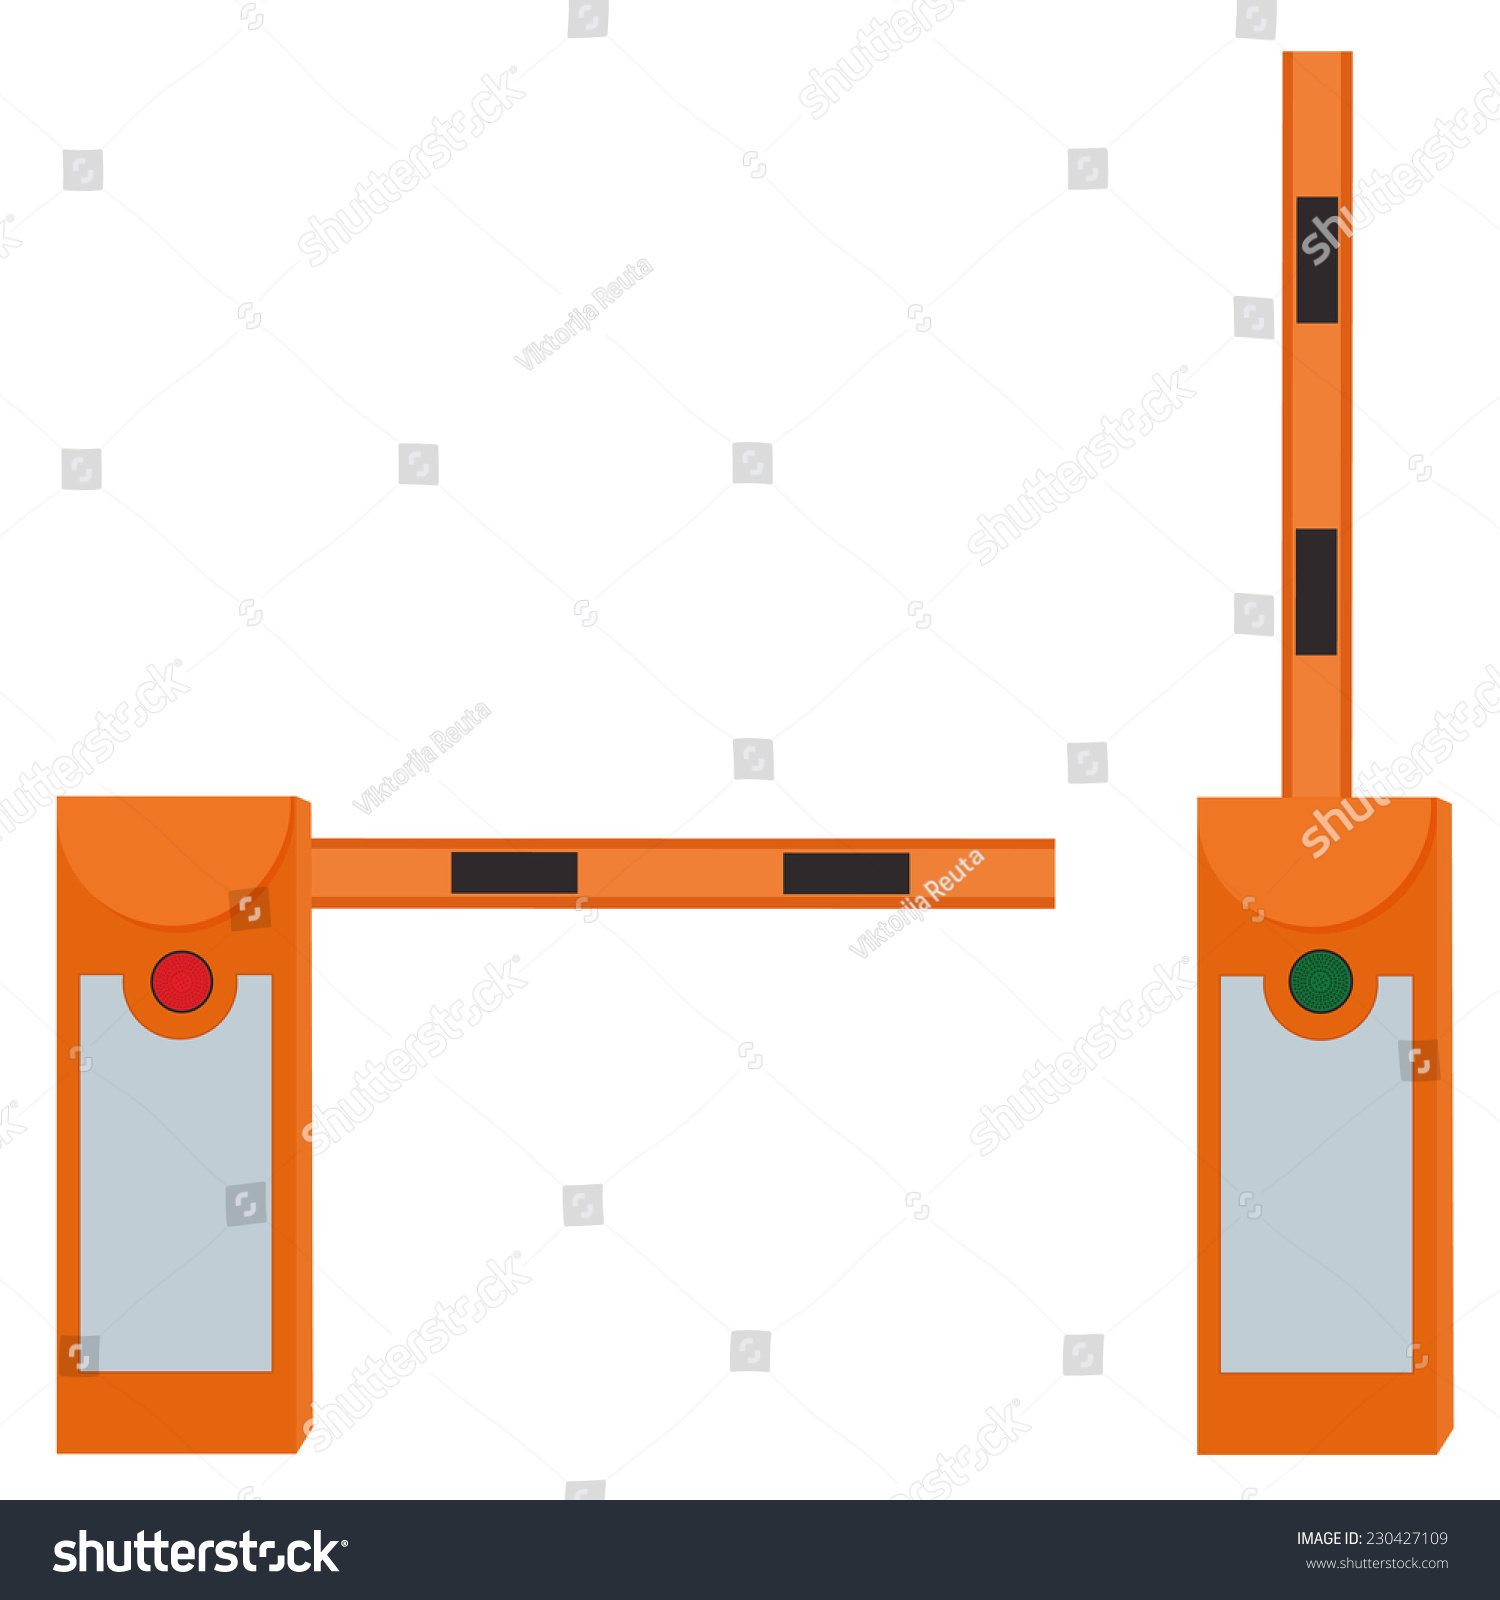 Closed barrier opened road stock vector